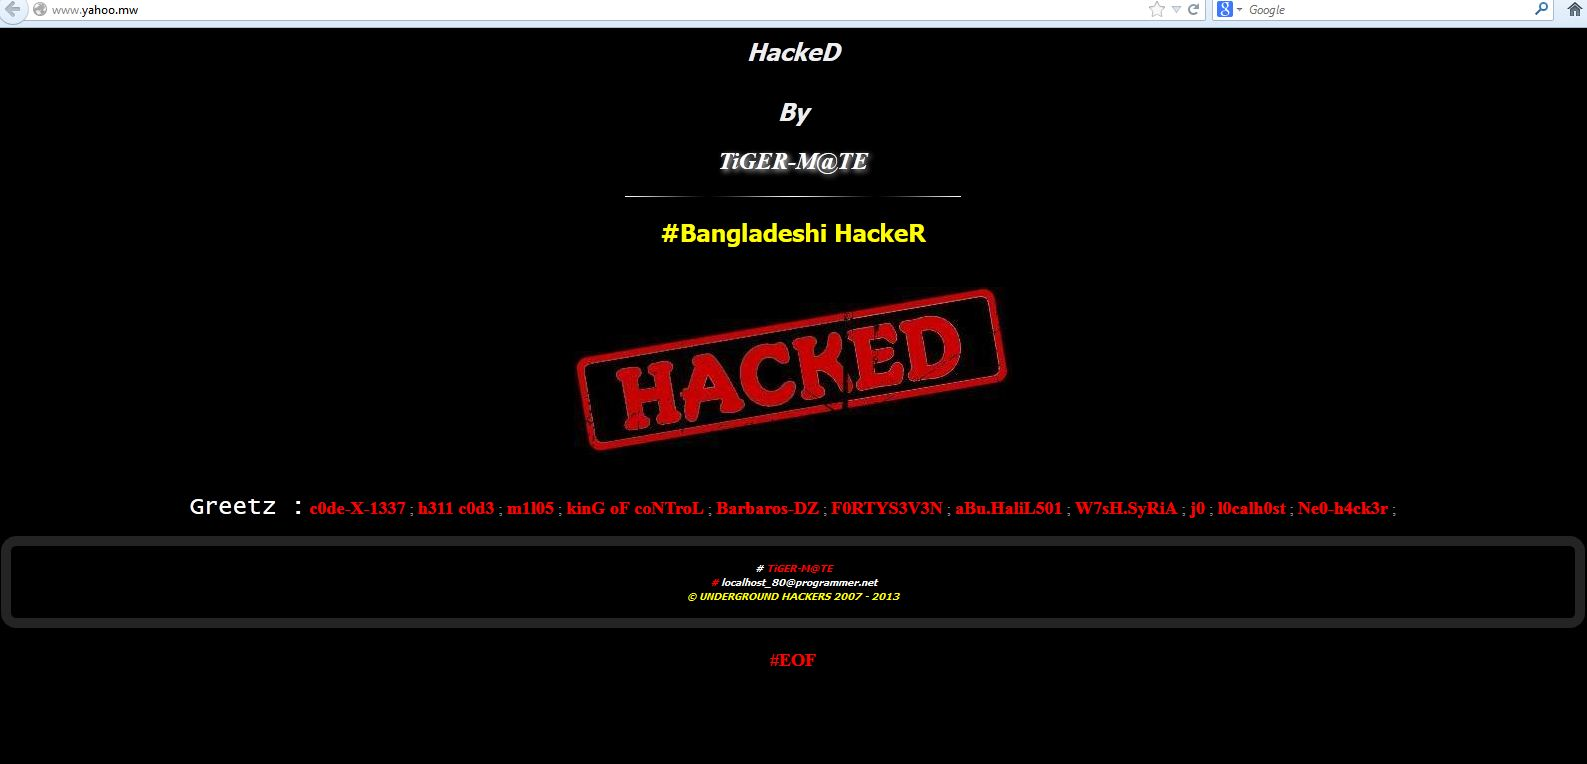 tiger-mate-Malawi-hacked